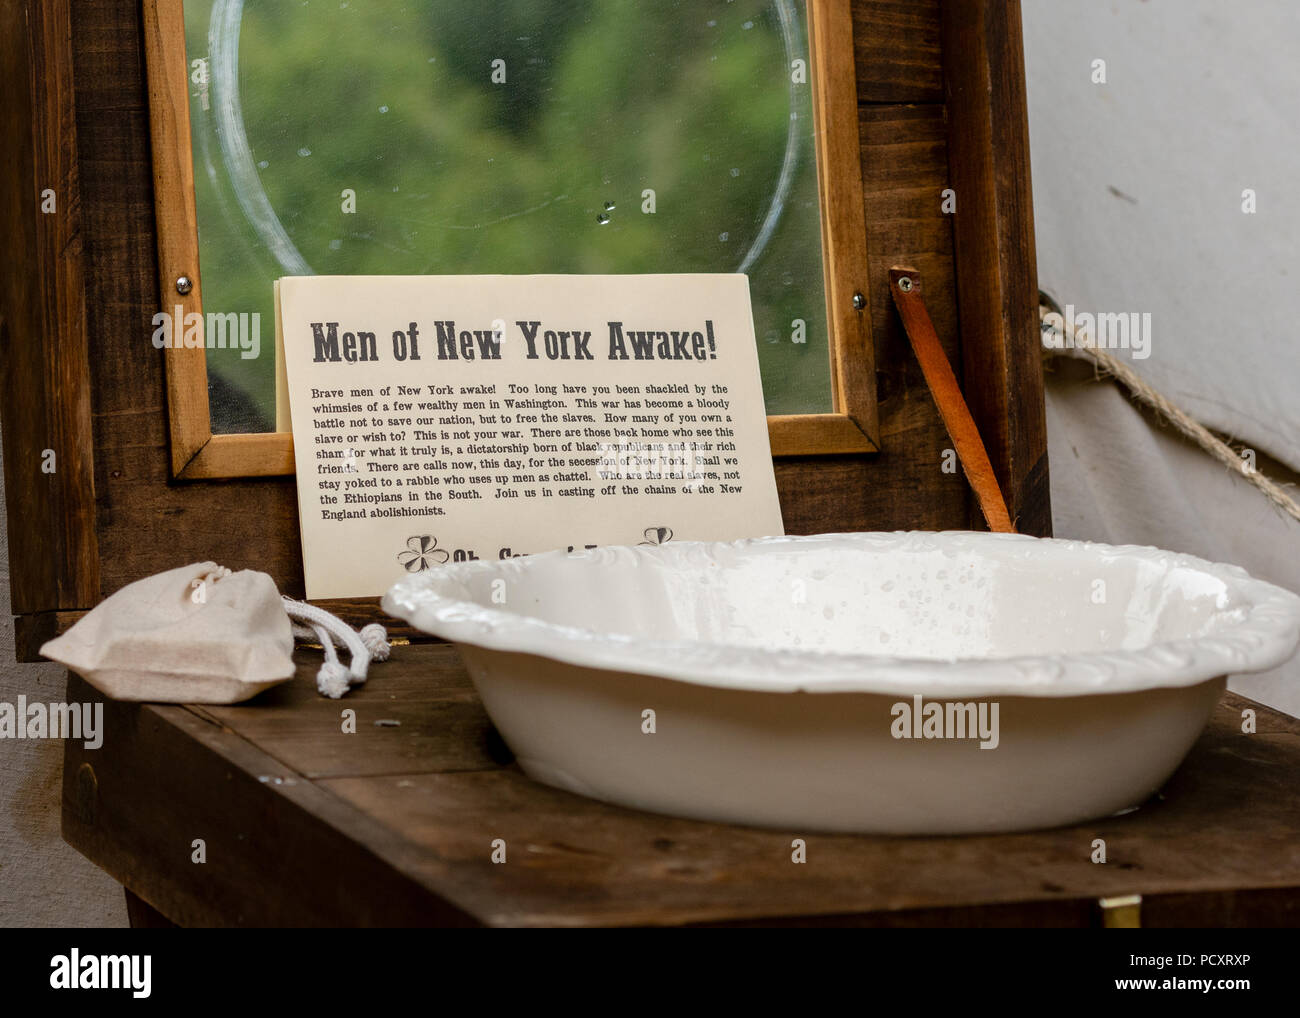 Duncans Mills, CA - July 14, 2018: Sign at a Northern California's Civil war reenactment remembering the New York City draft riots (Draft Week) when t - Stock Image